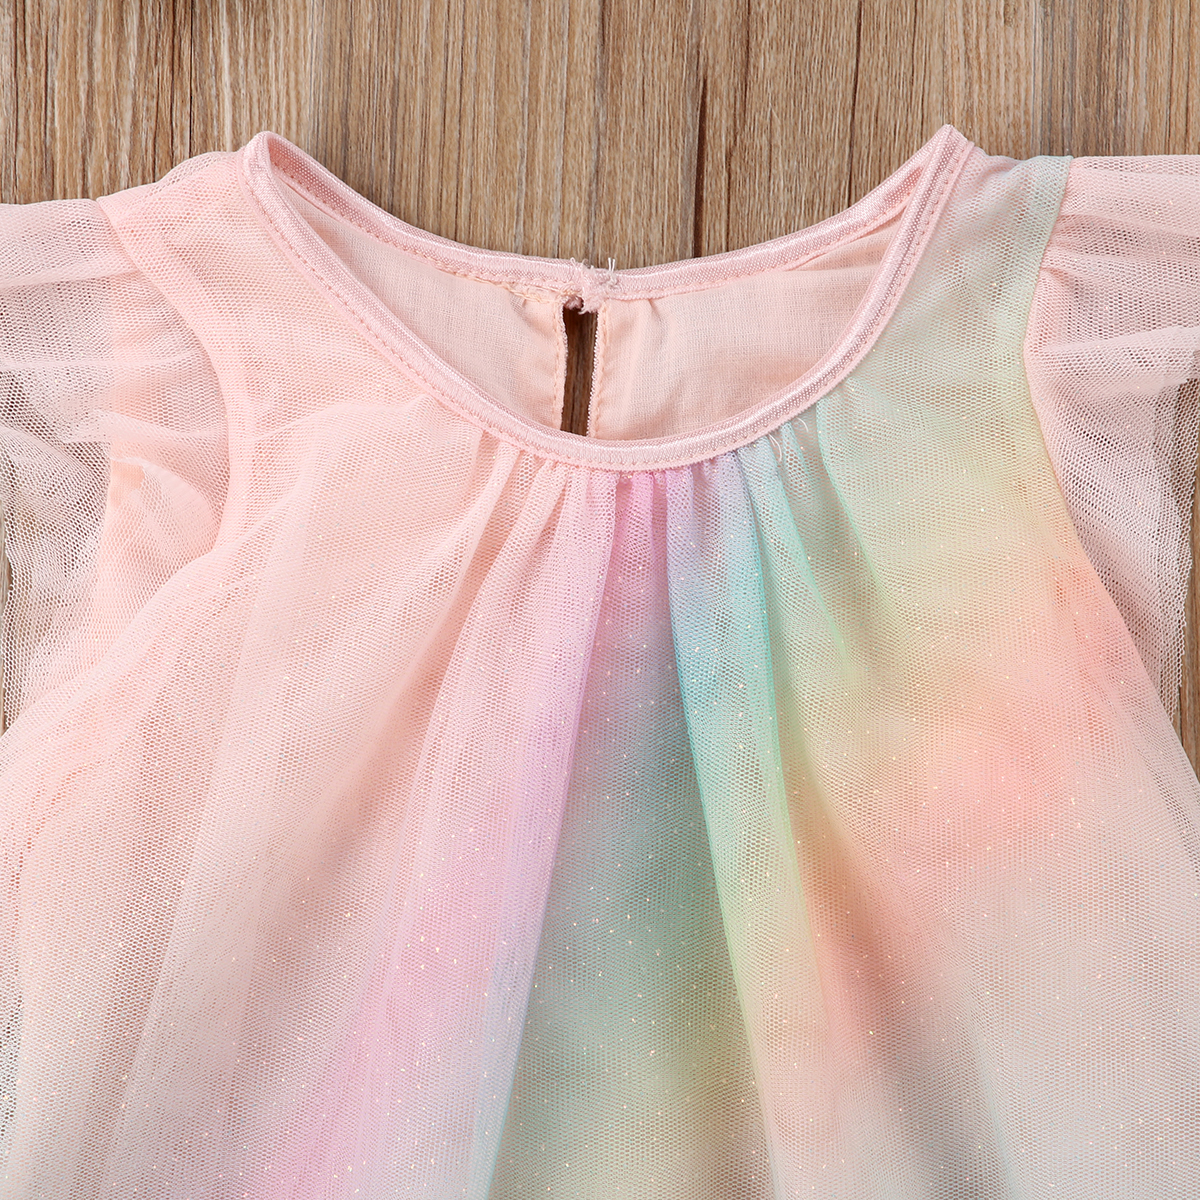 1cfa552906 2018 Unicorn Baby Girl Dress Mesh Colourful Tulle Party Fancy Dress Sundress  Summer Cute Clothing-in Dresses from Mother   Kids on Aliexpress.com